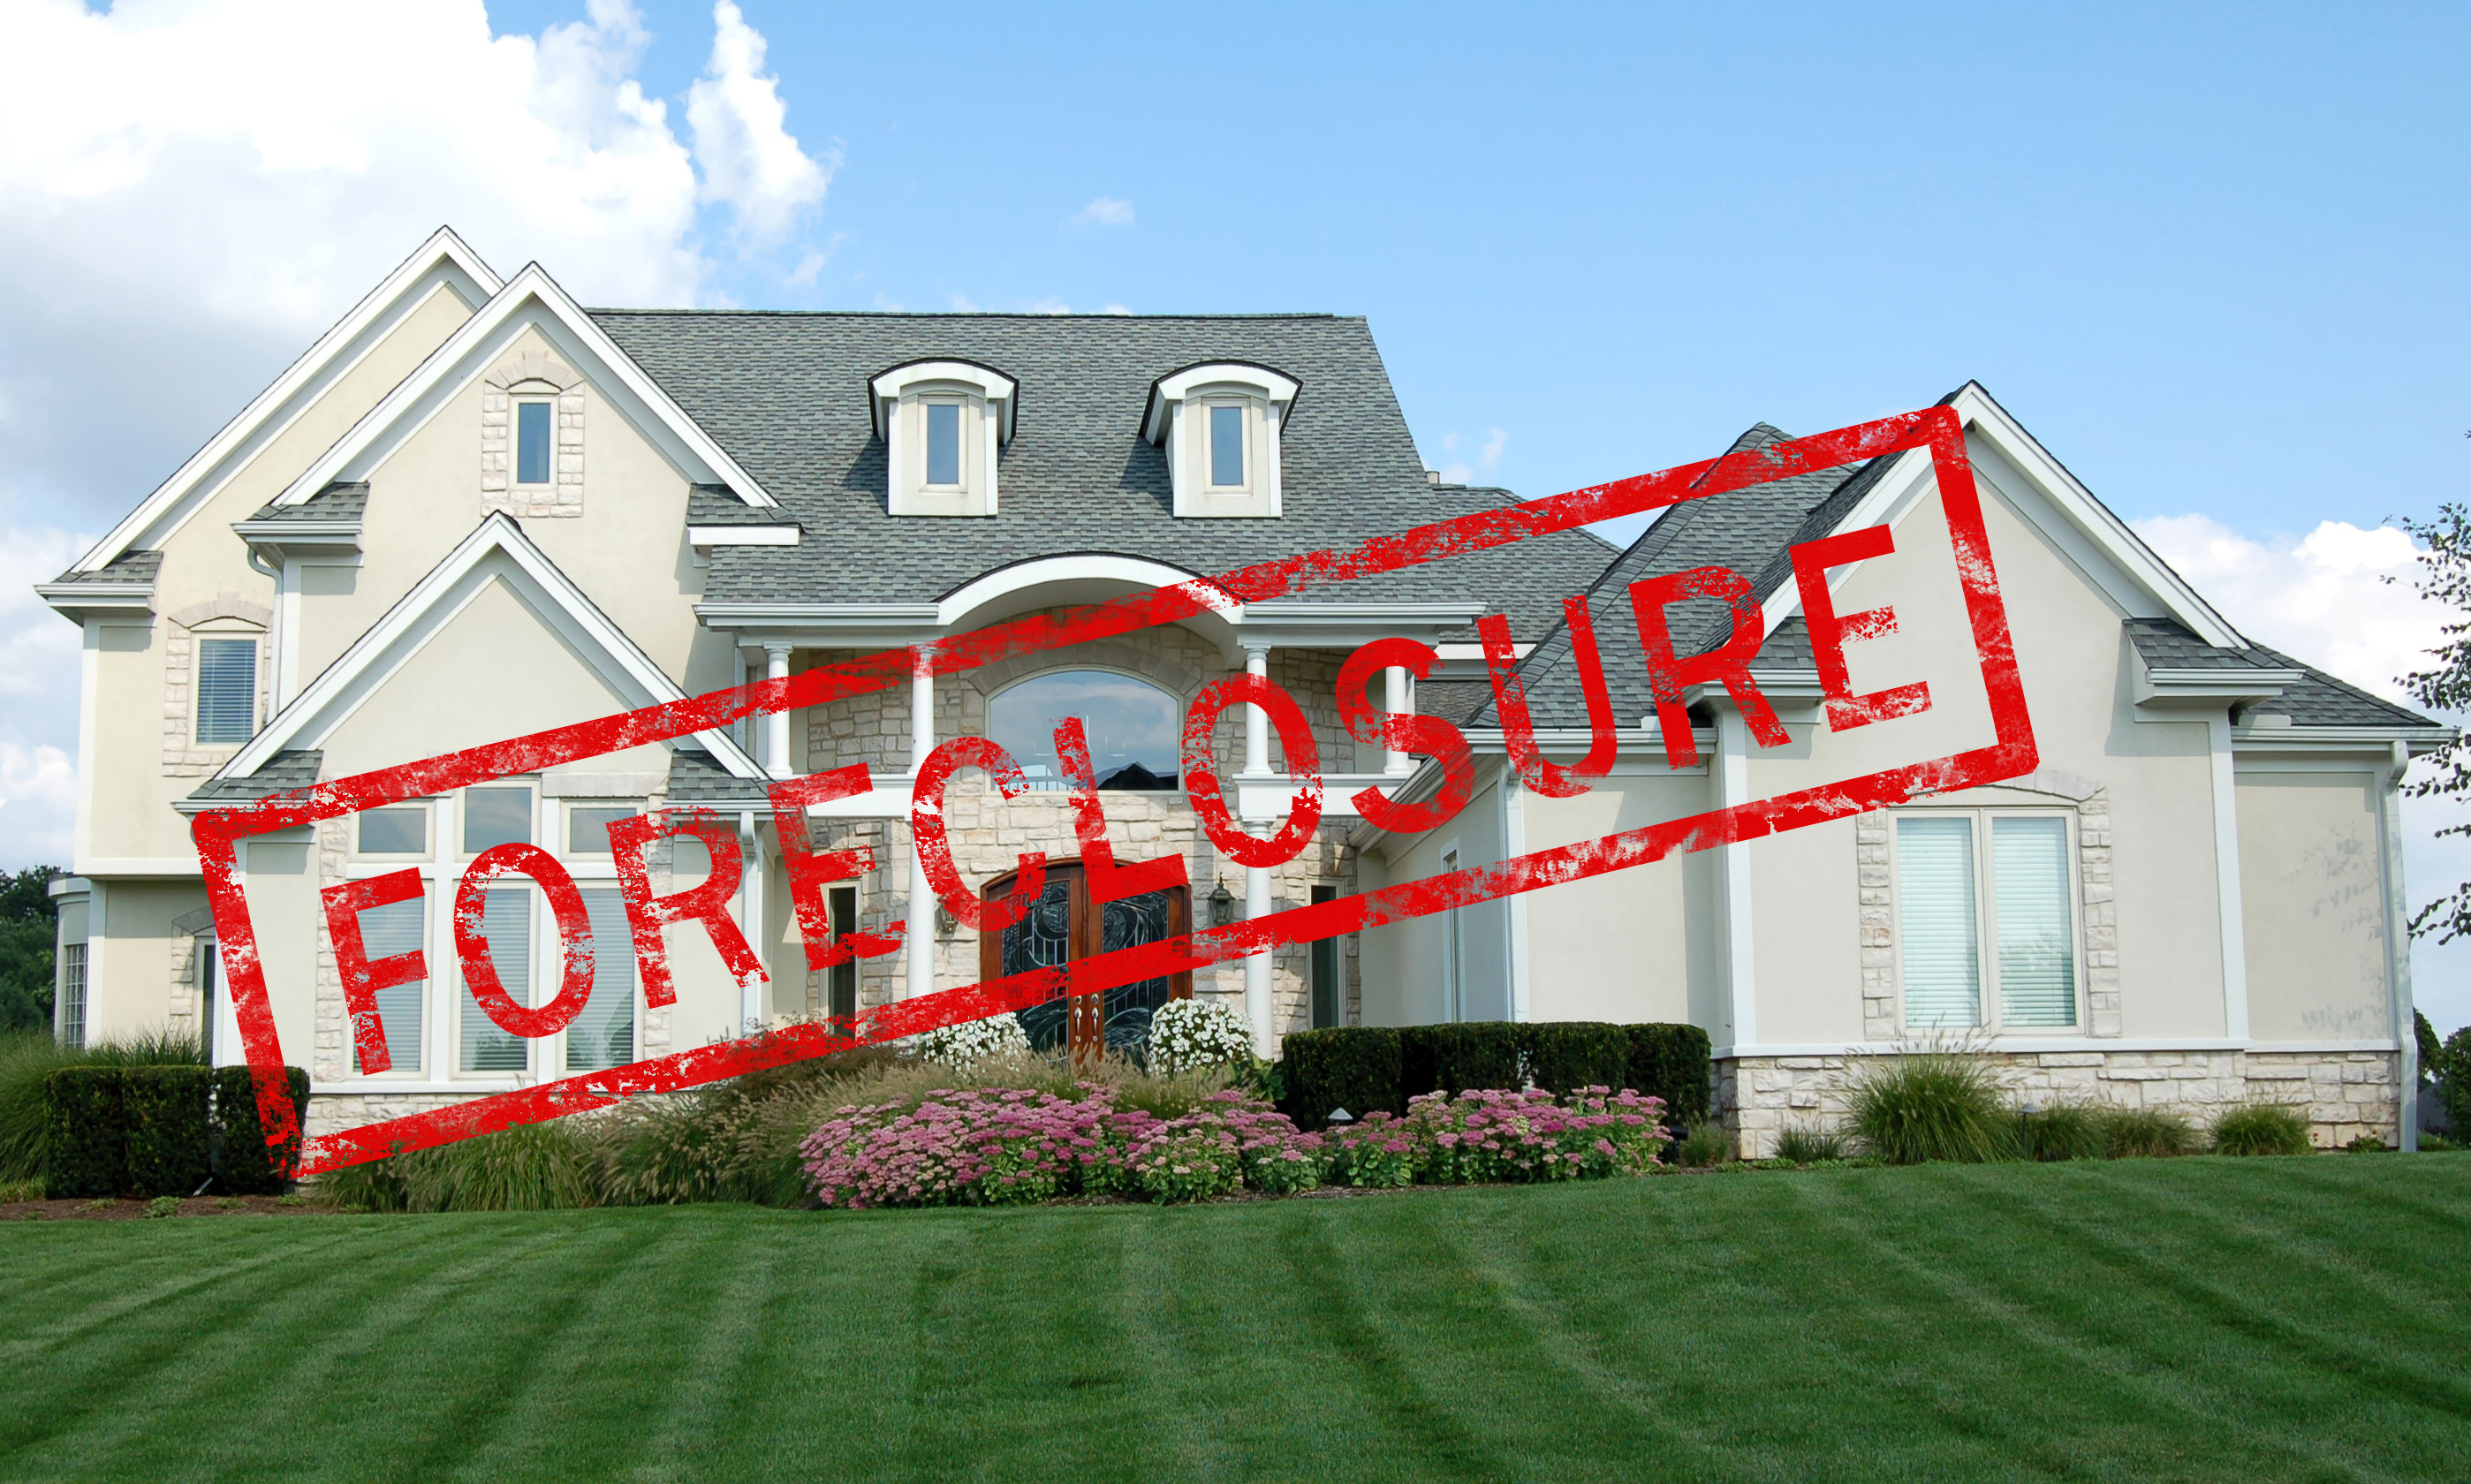 Call CaliHaus Appraisals, Inc. when you need valuations regarding Orange foreclosures